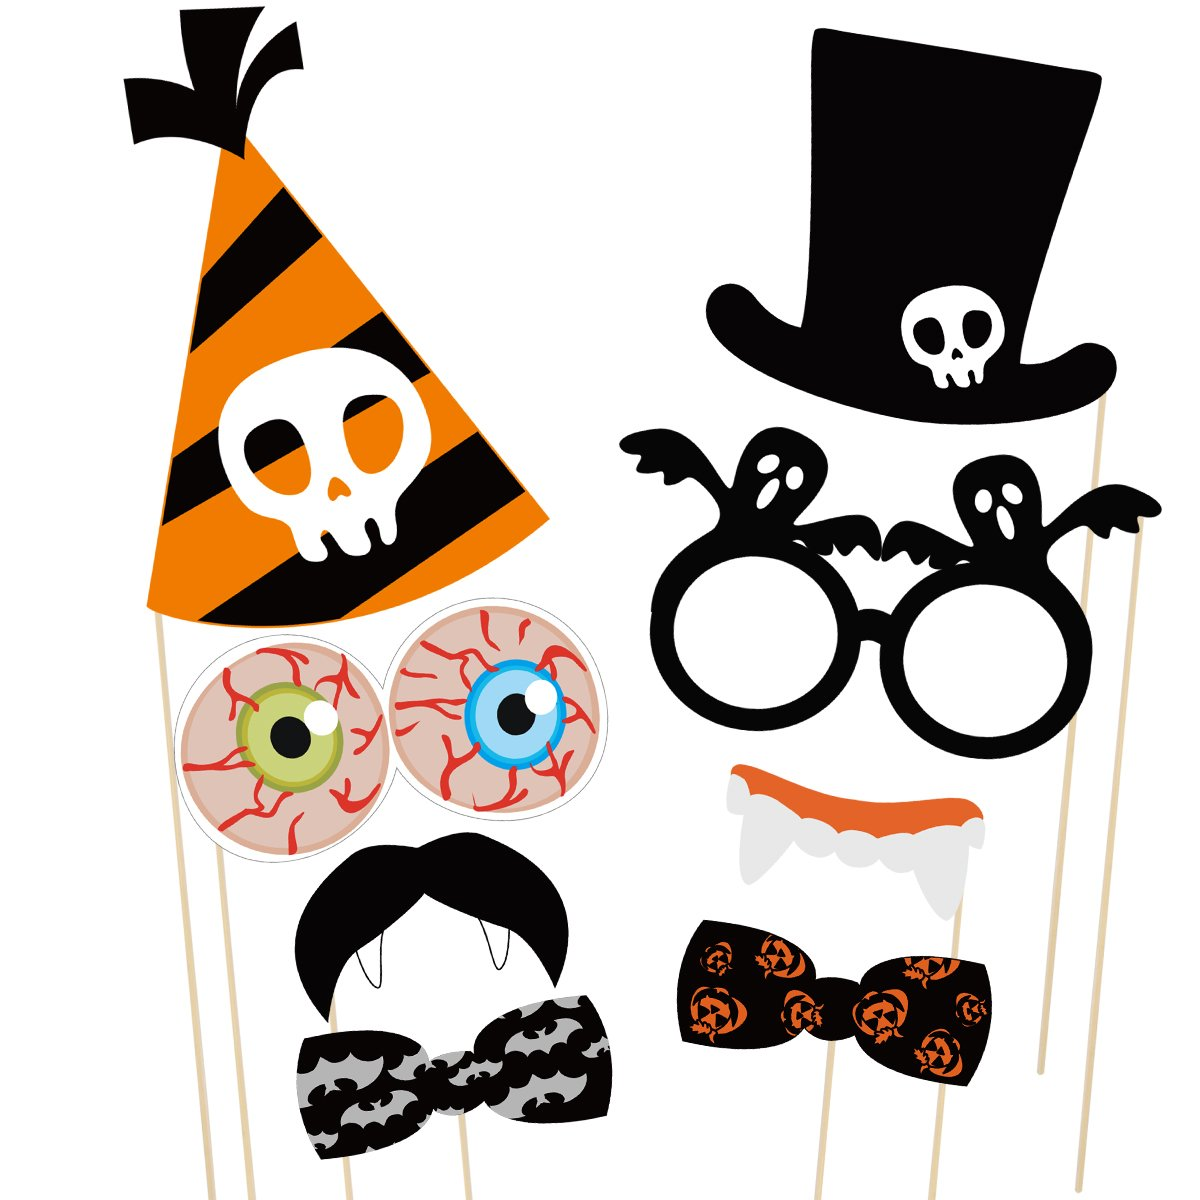 PRETYZOOM 47 Pieces Halloween Party Photo Booth Props Kit Fancy Party Decor Halloween SupplyPose Sign Kit for Party Decoration by PRETYZOOM (Image #6)